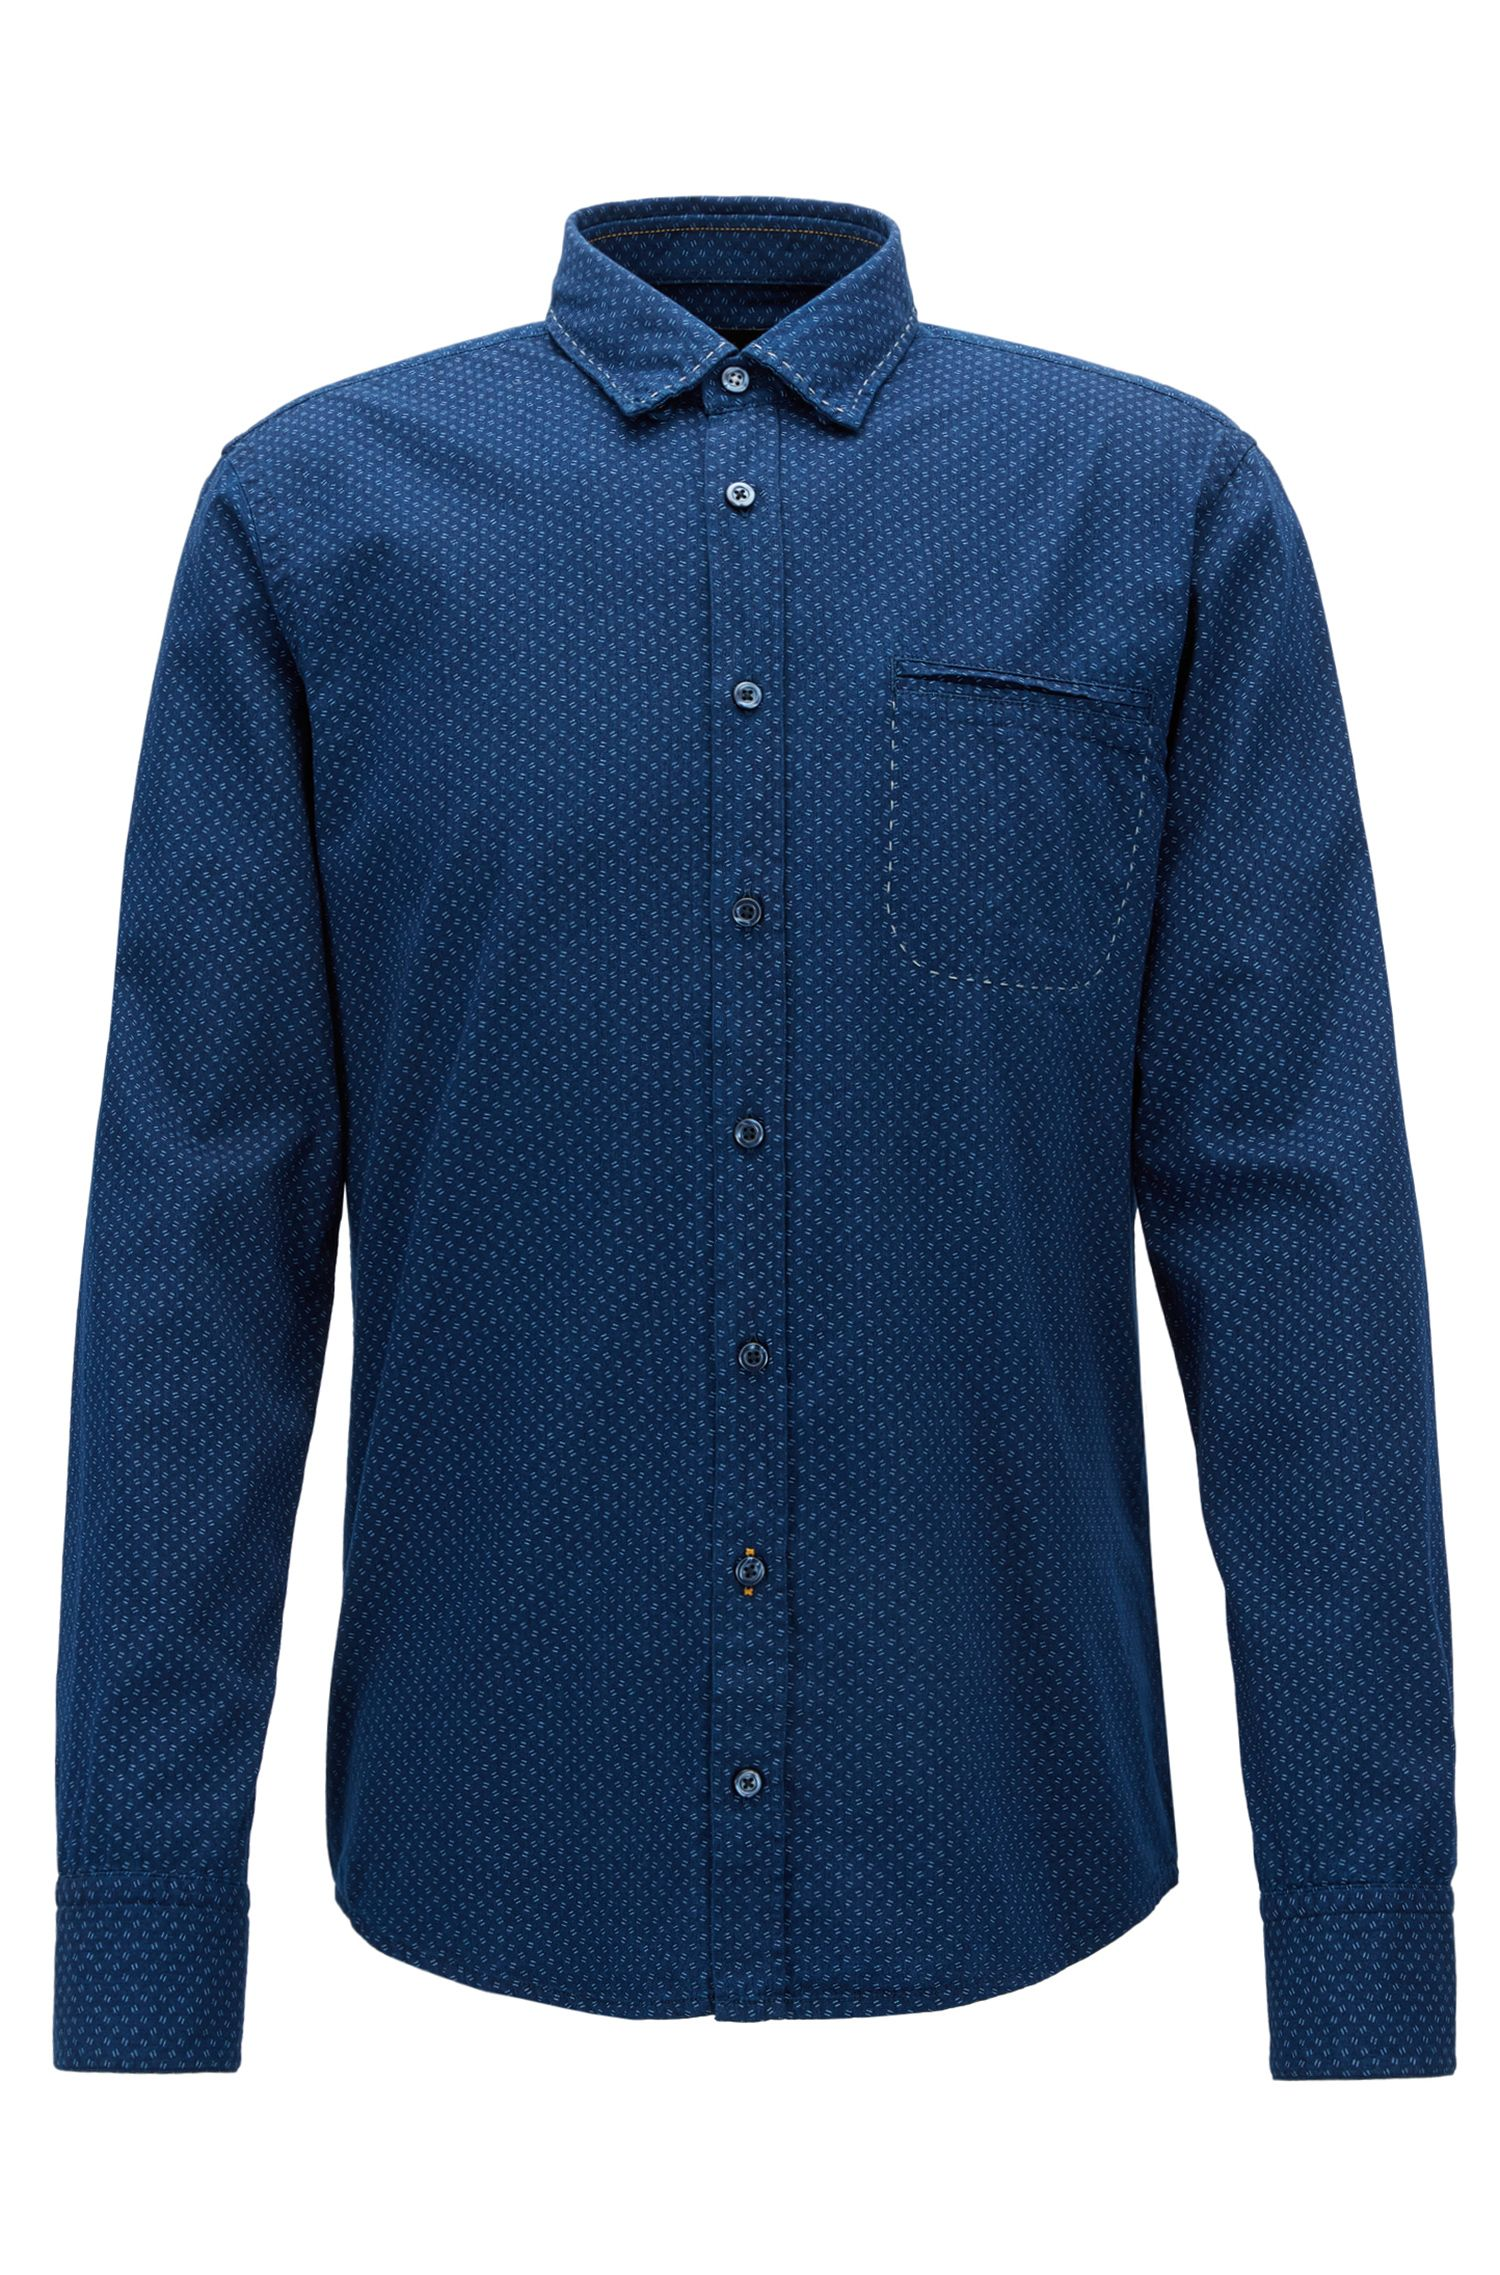 Regular-fit shirt in printed cotton chambray, Dark Blue